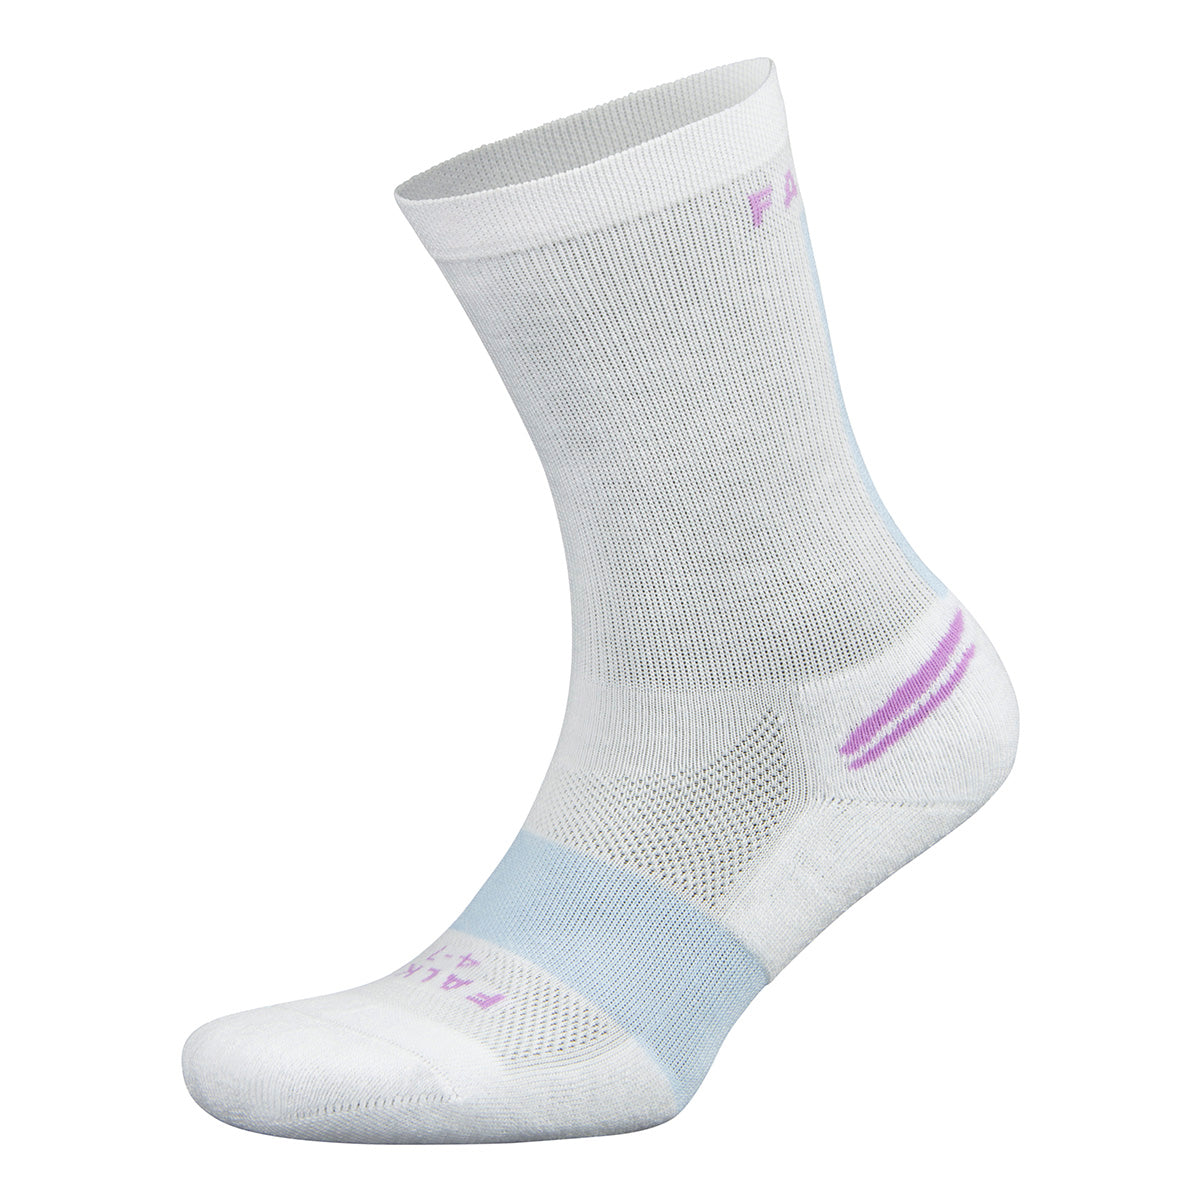 Falke Tennis Socks